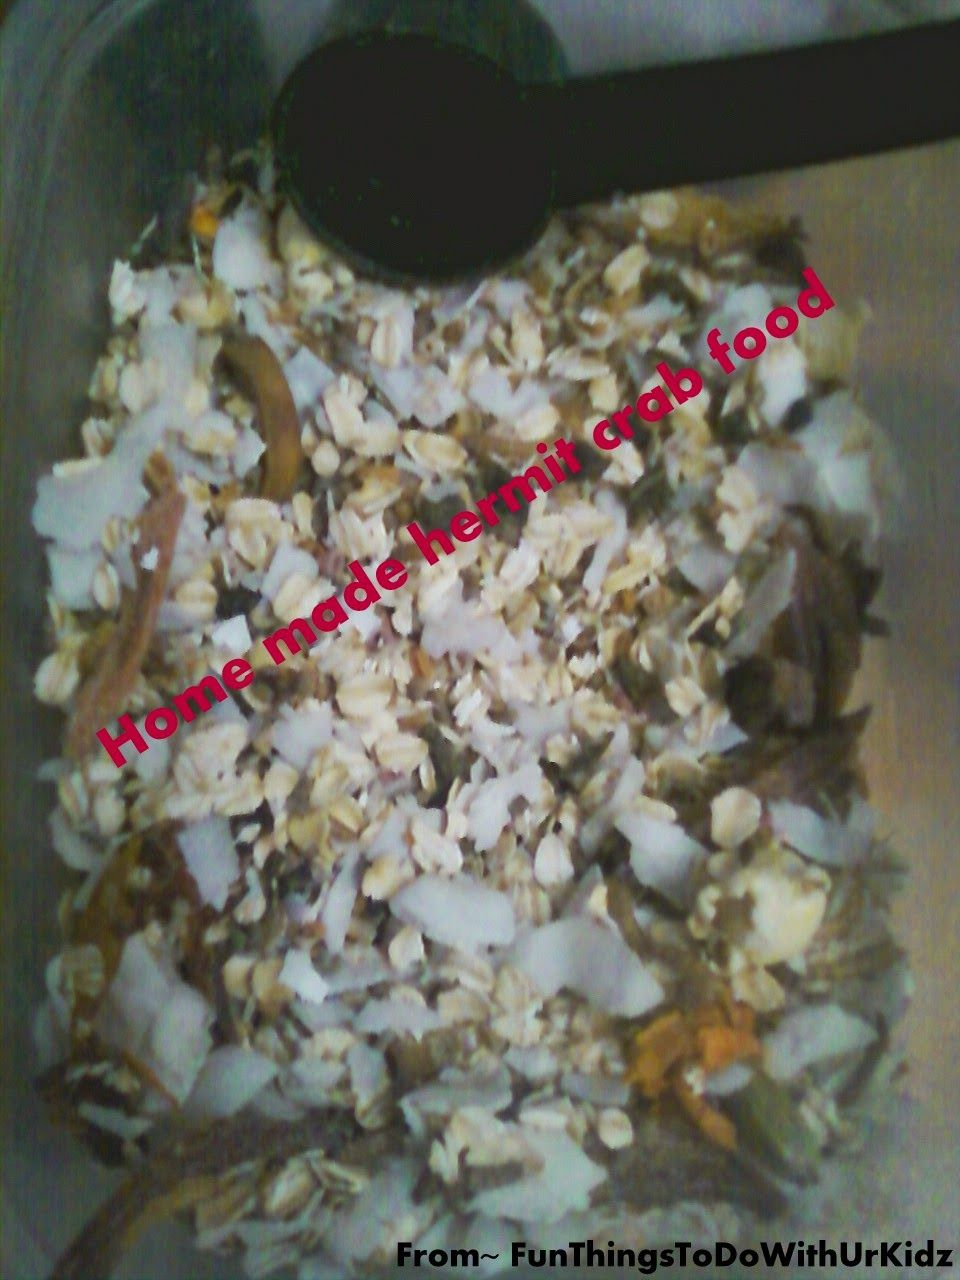 FunThingsToDoWithUrKidz: Home made hermit crab food (that kids can help with)